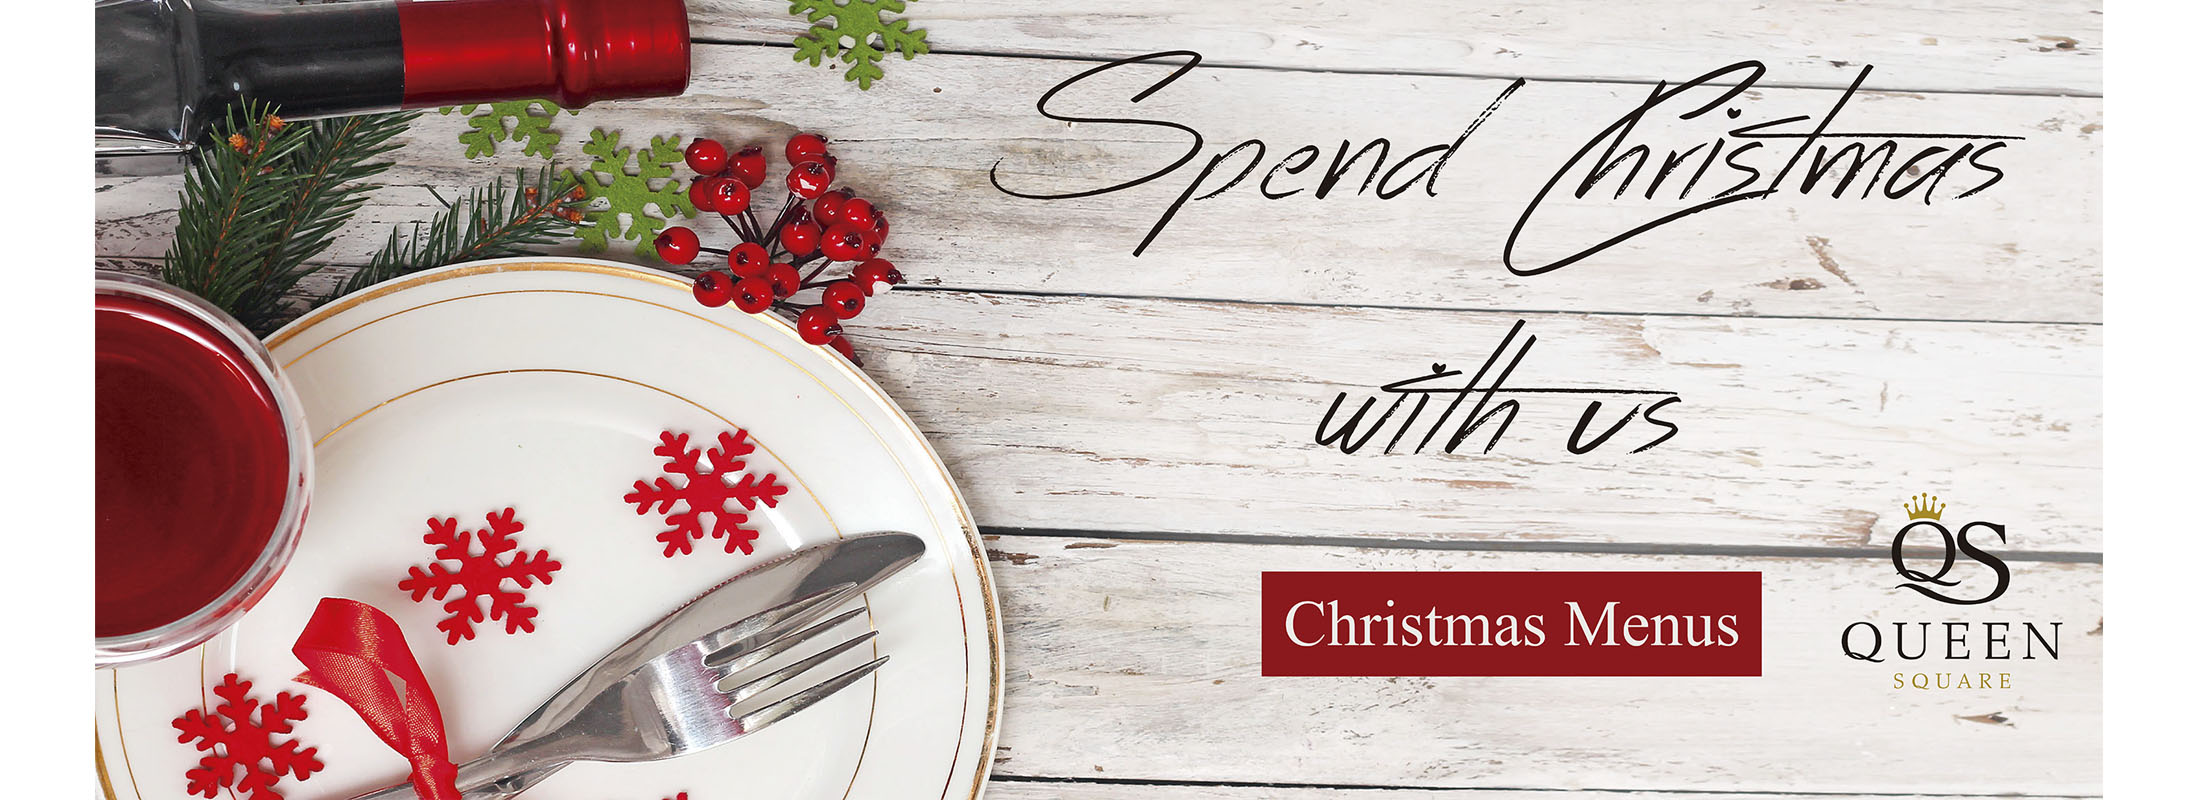 Spend-Christmas-with-us-Queen-Square-slider1